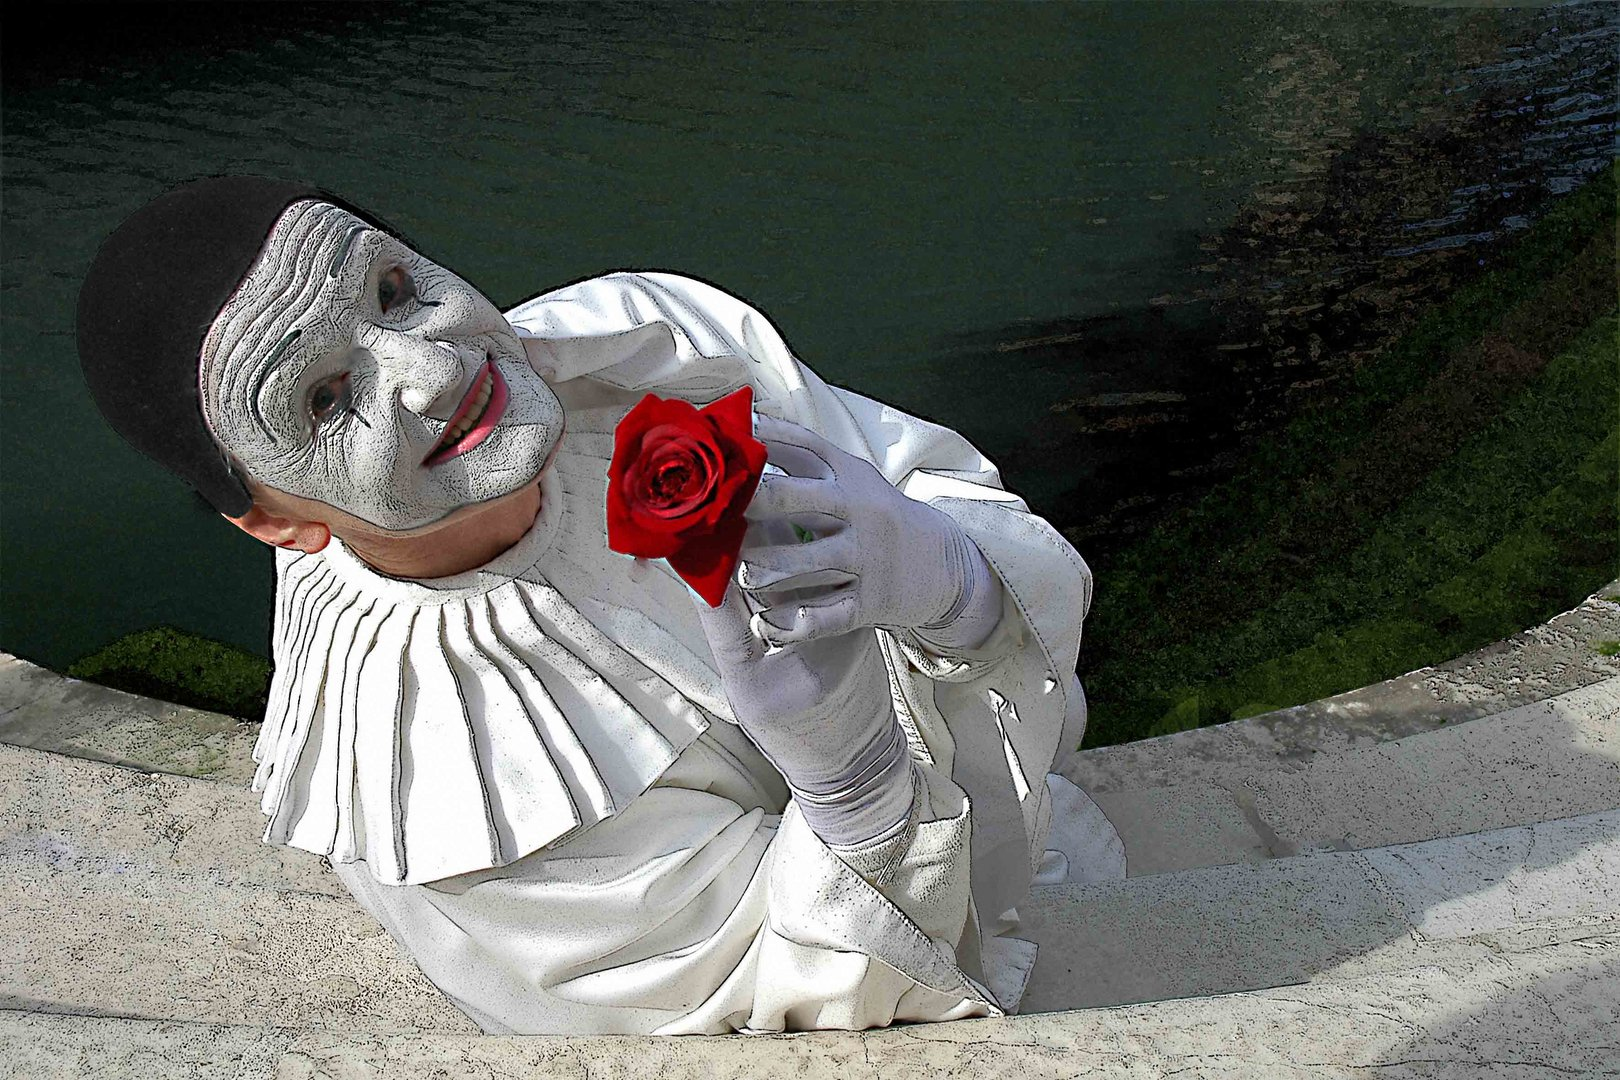 Clown mit roter Rose